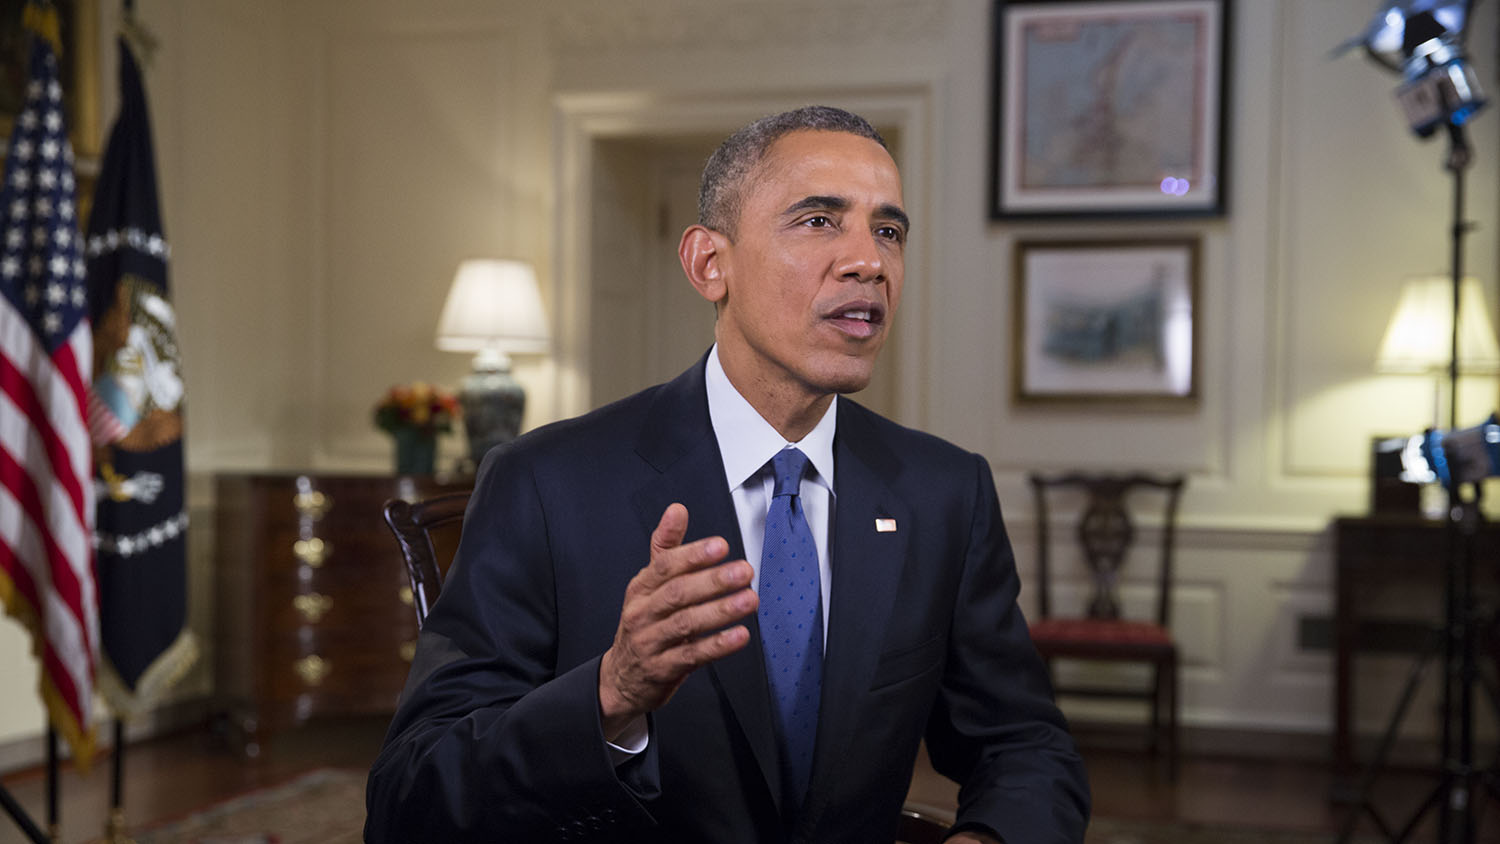 President Obama tapes the Weekly Address on Loretta Lynch